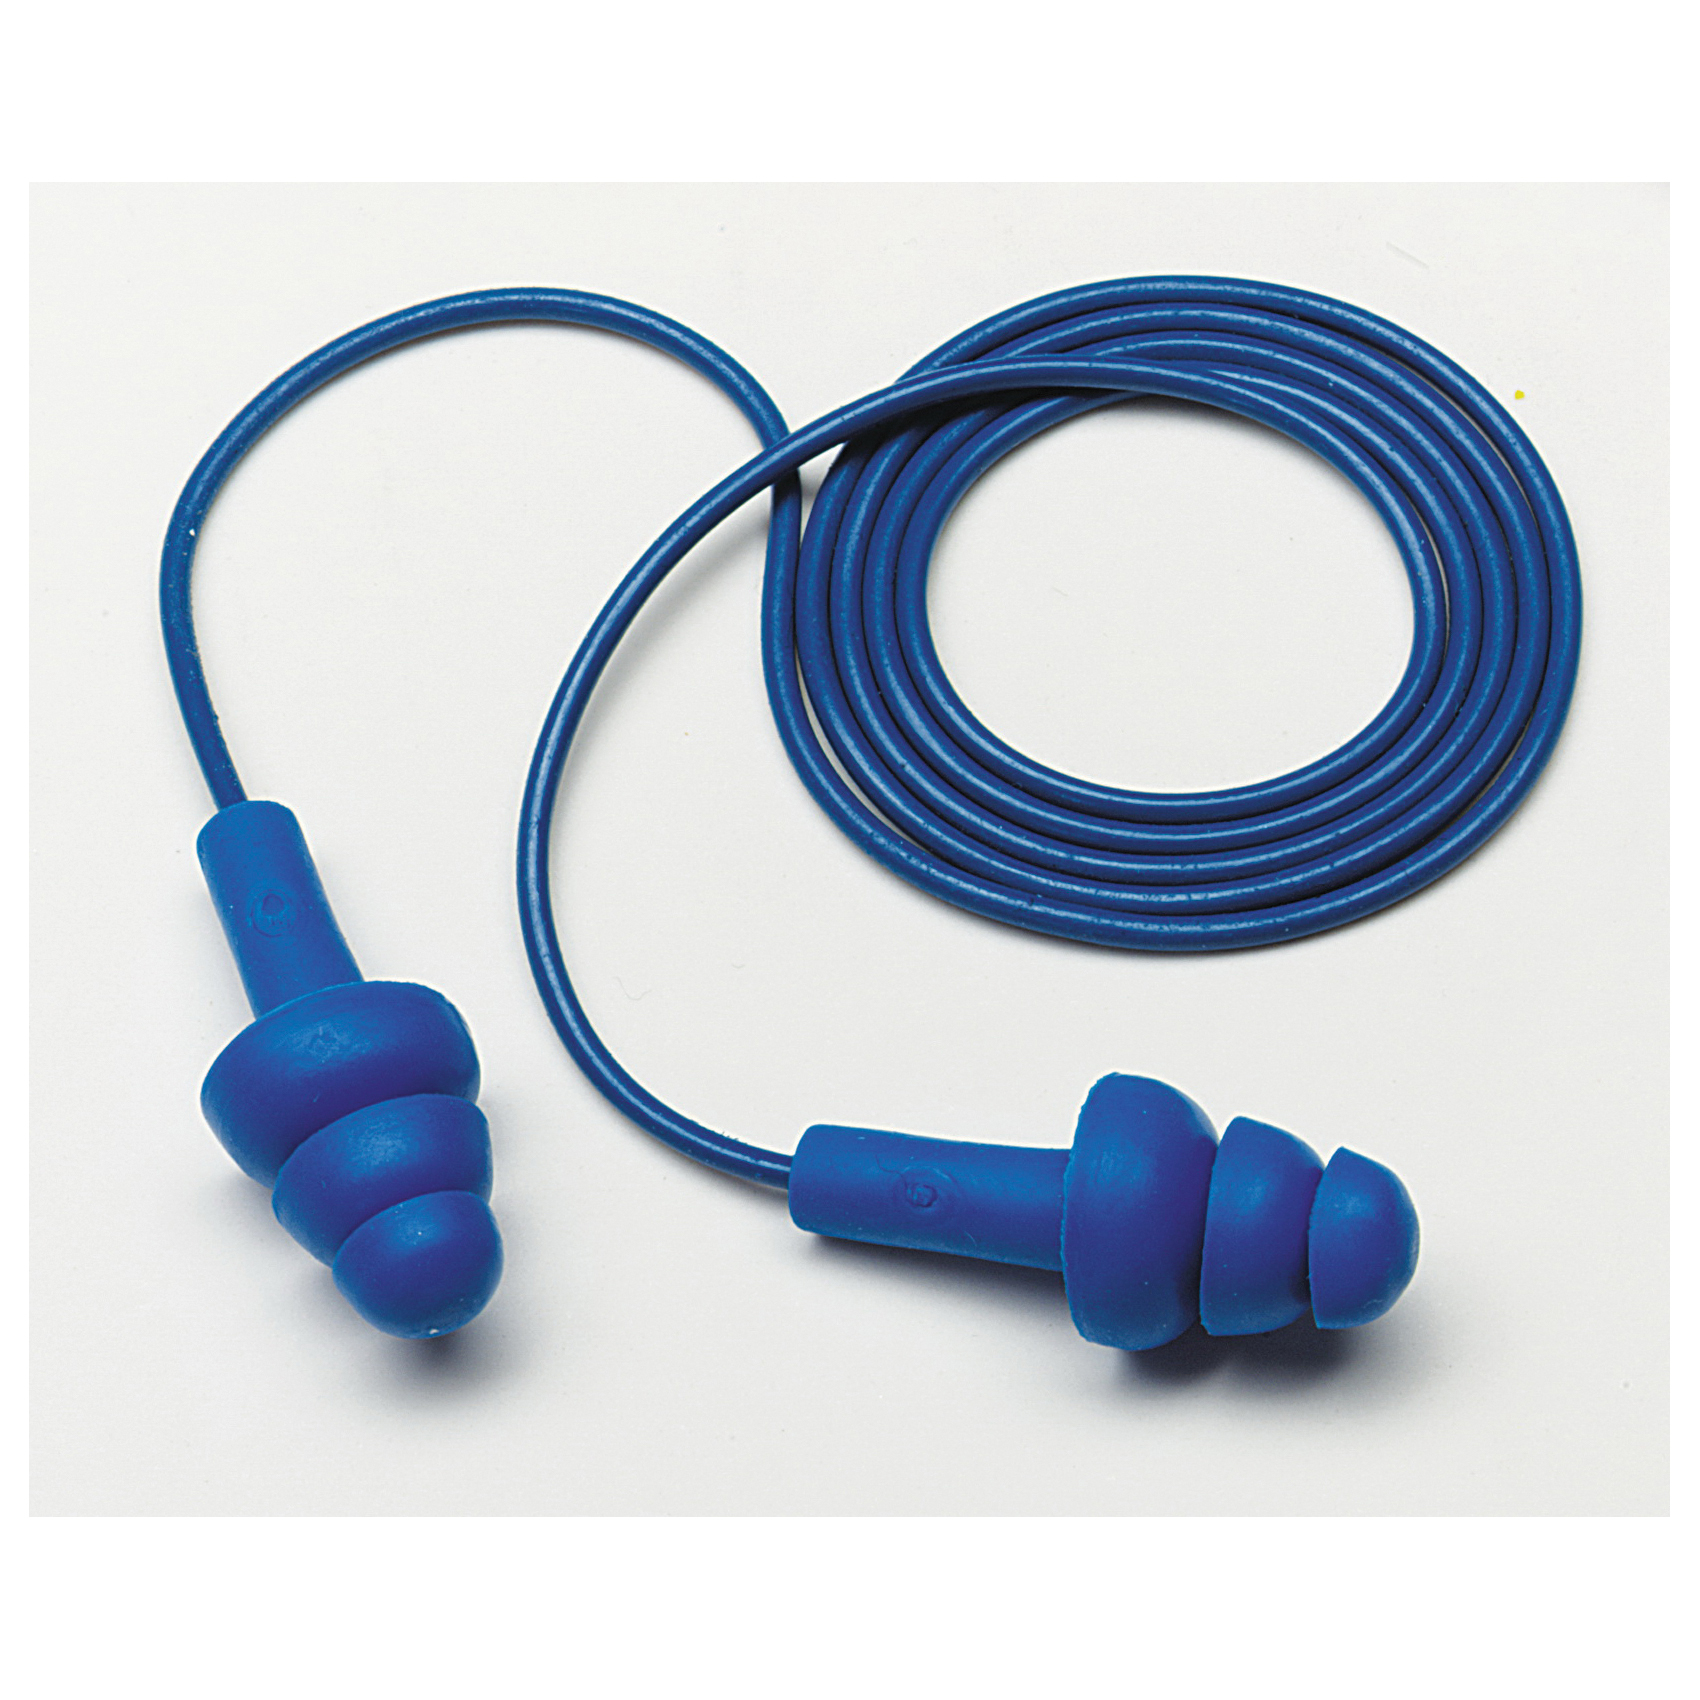 3M™ E-A-R™ UltraFit™ 080529-40004 E-A-R Metal Detectable Corded Ear Plug, 25 dB Noise Reduction, Flange, Specifications Met: ANSI S3.19-1974, CSA Certified Class AL, Reusable